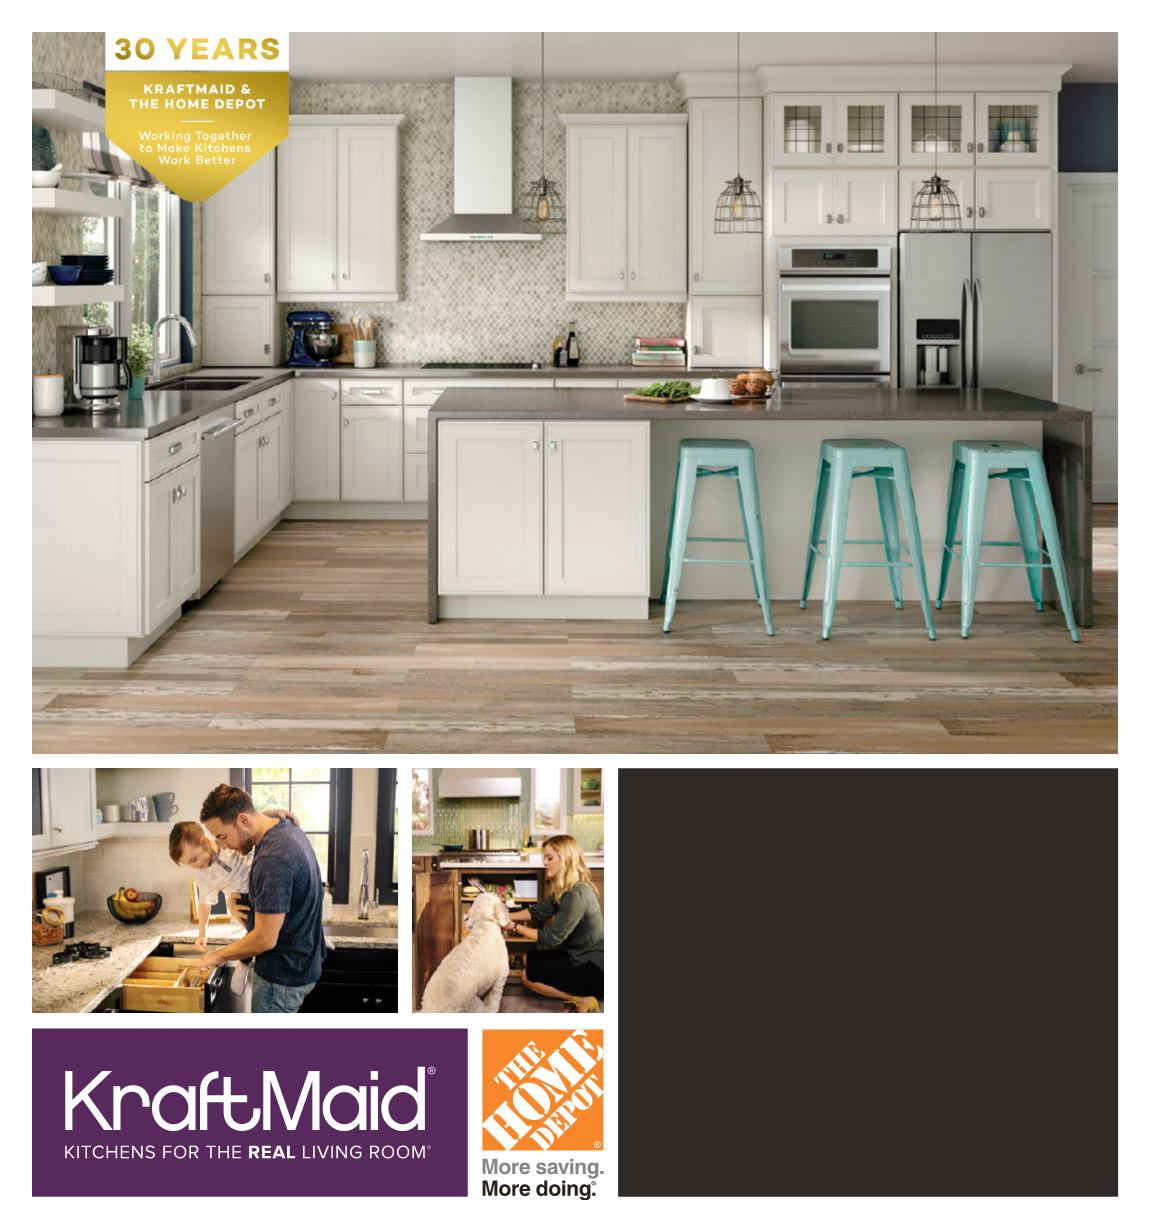 2016 KraftMaid Brochure   The Home Depot   Page 1